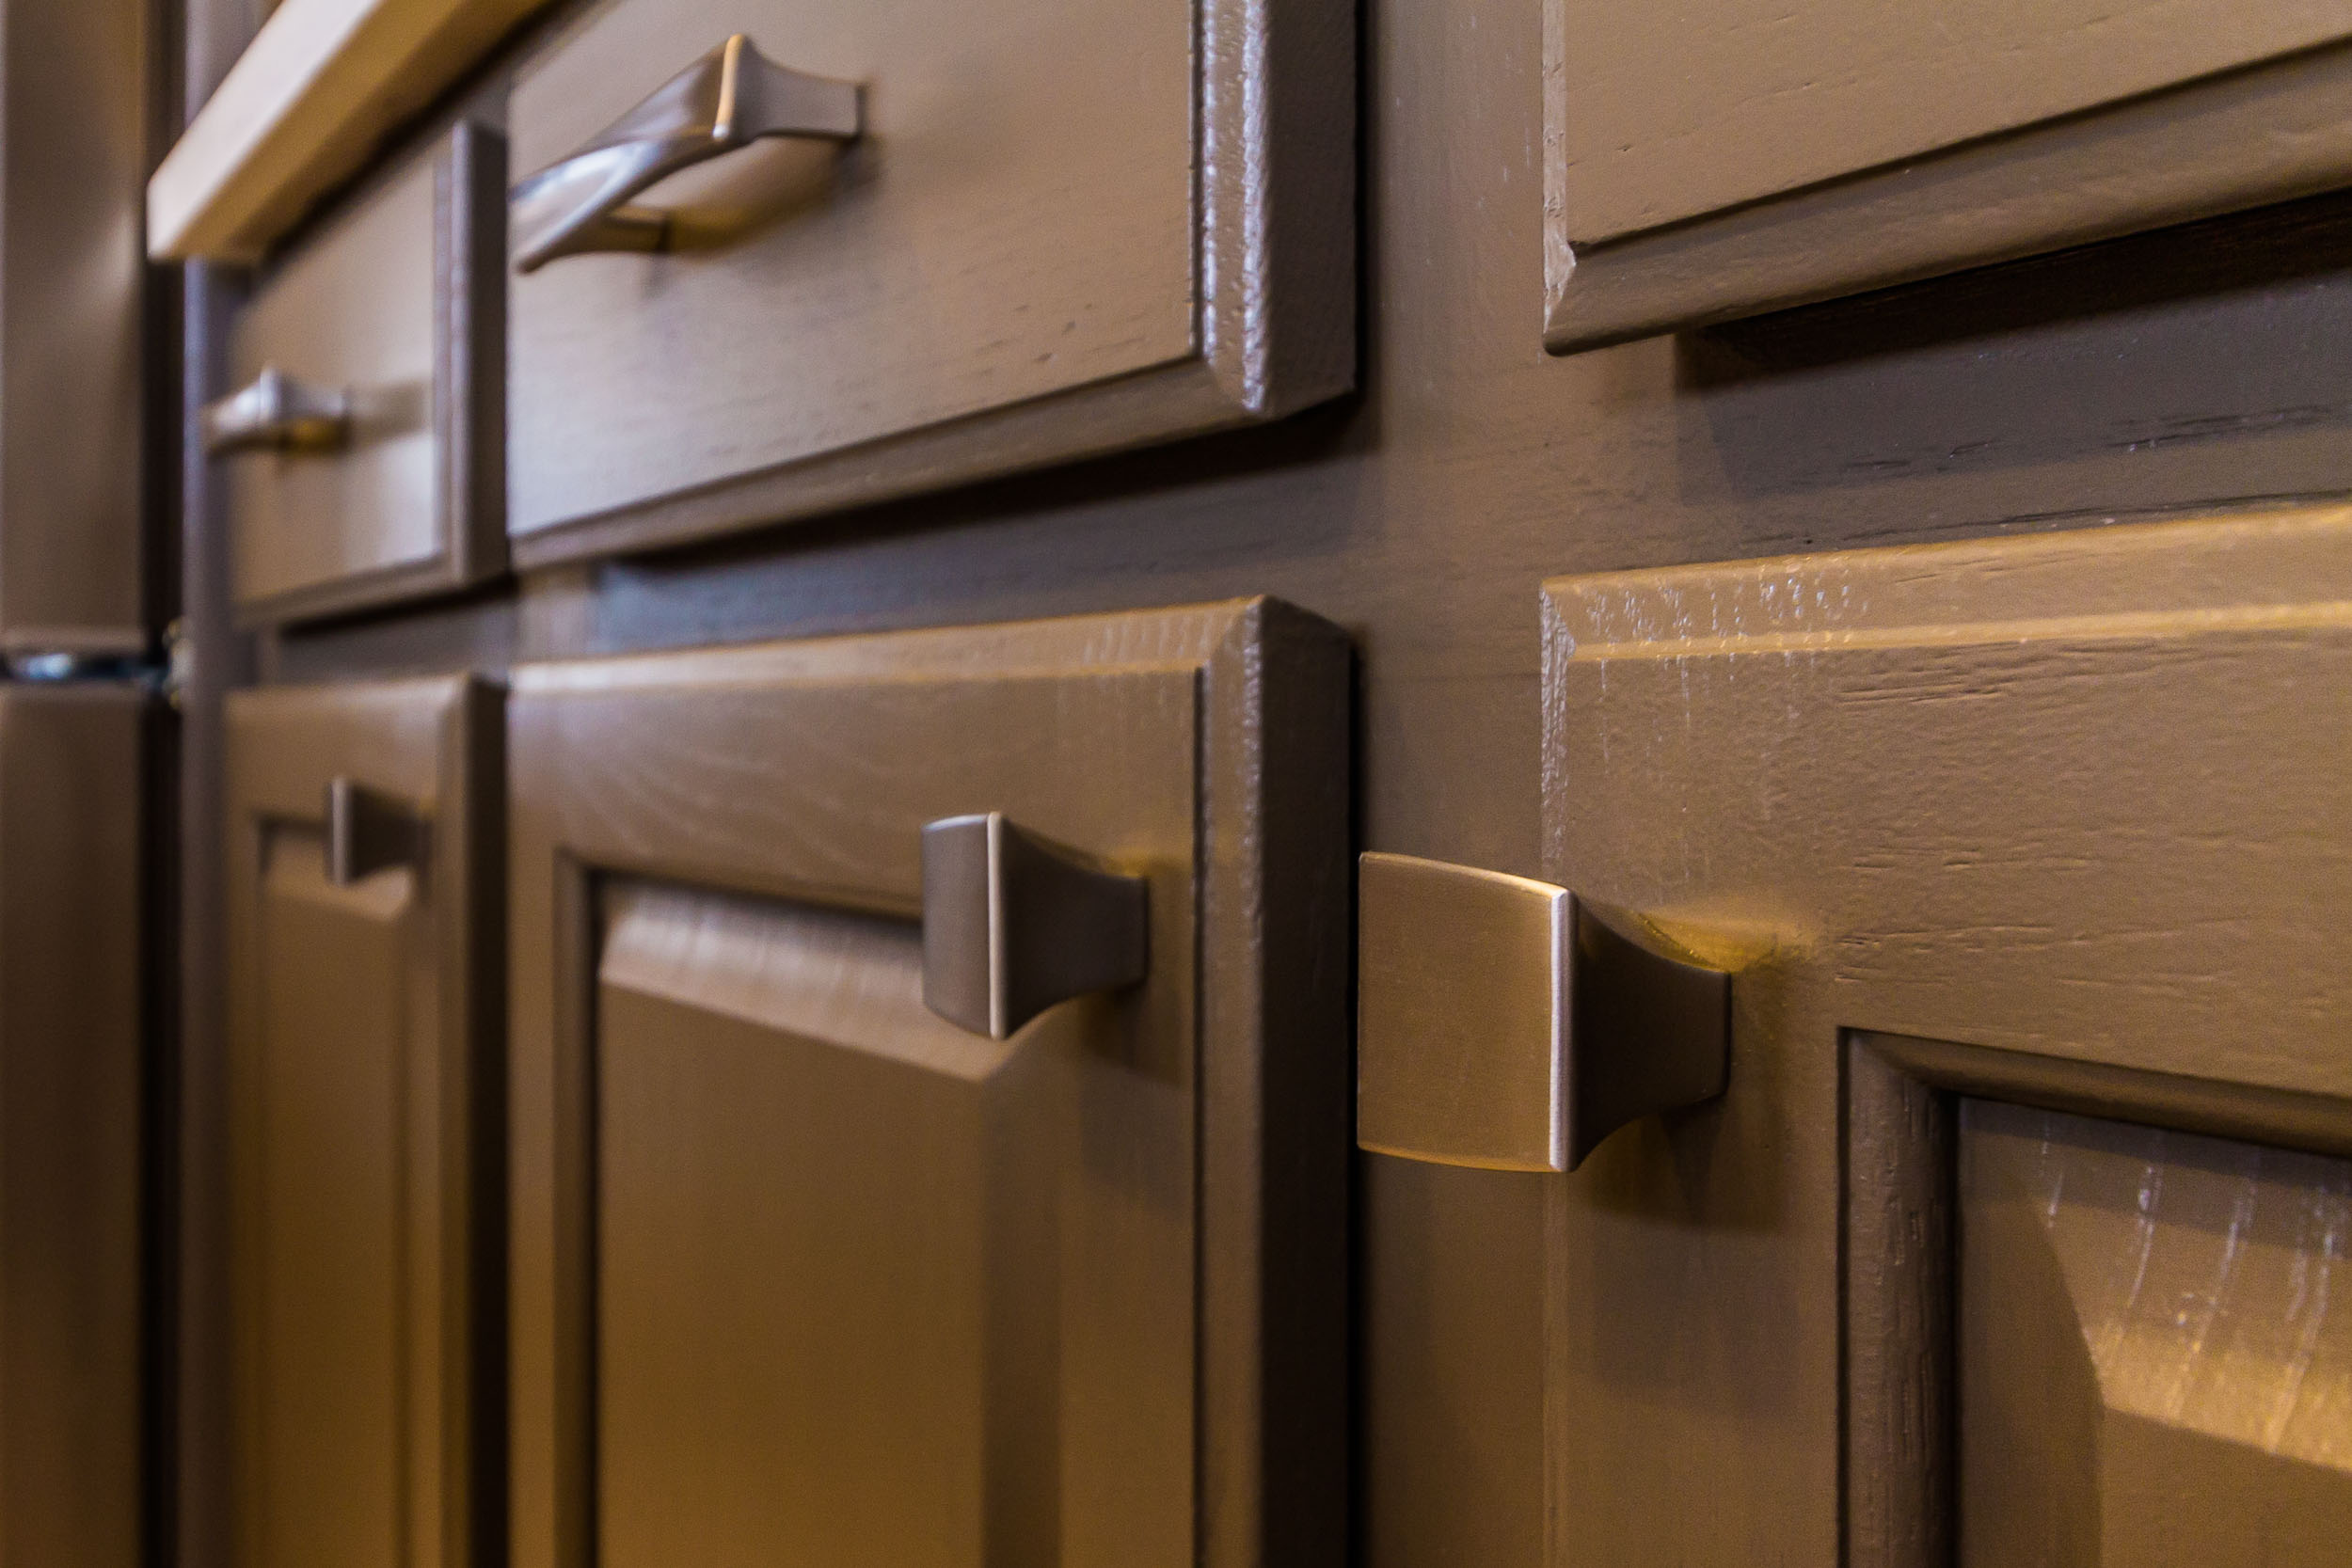 Berenson Cabinet Hardware Knobs and Pulls